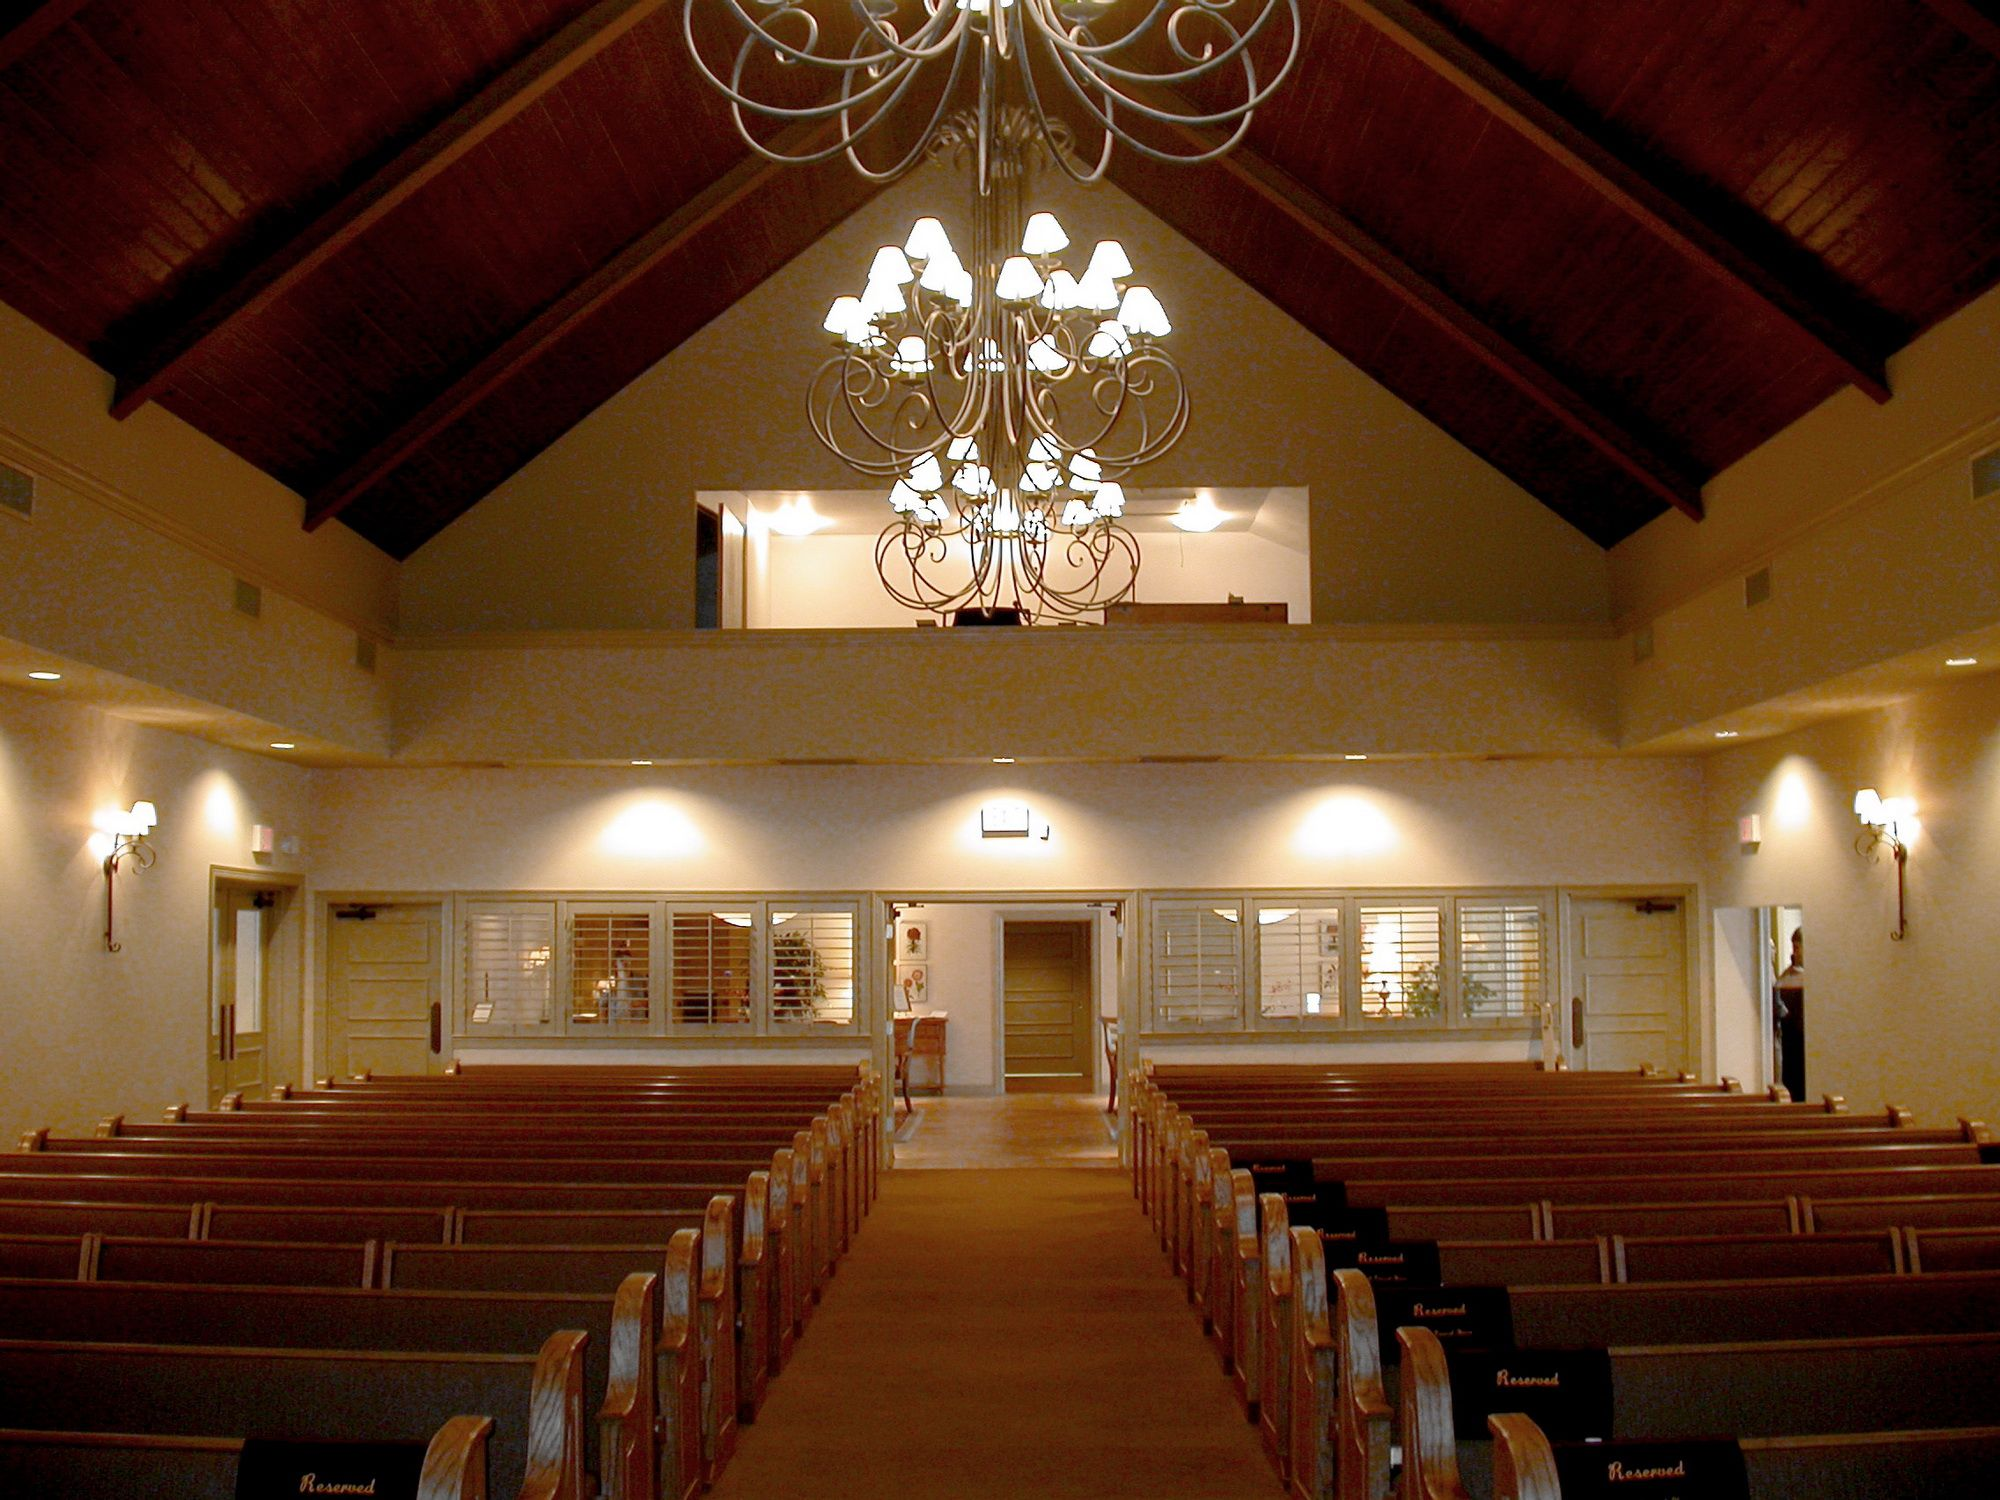 Awesome Funeral Home Interior Design Home Interior Design Simple Excellent In Funeral Home Interior Design Interior Dec Funeral Home House Design Home Pictures